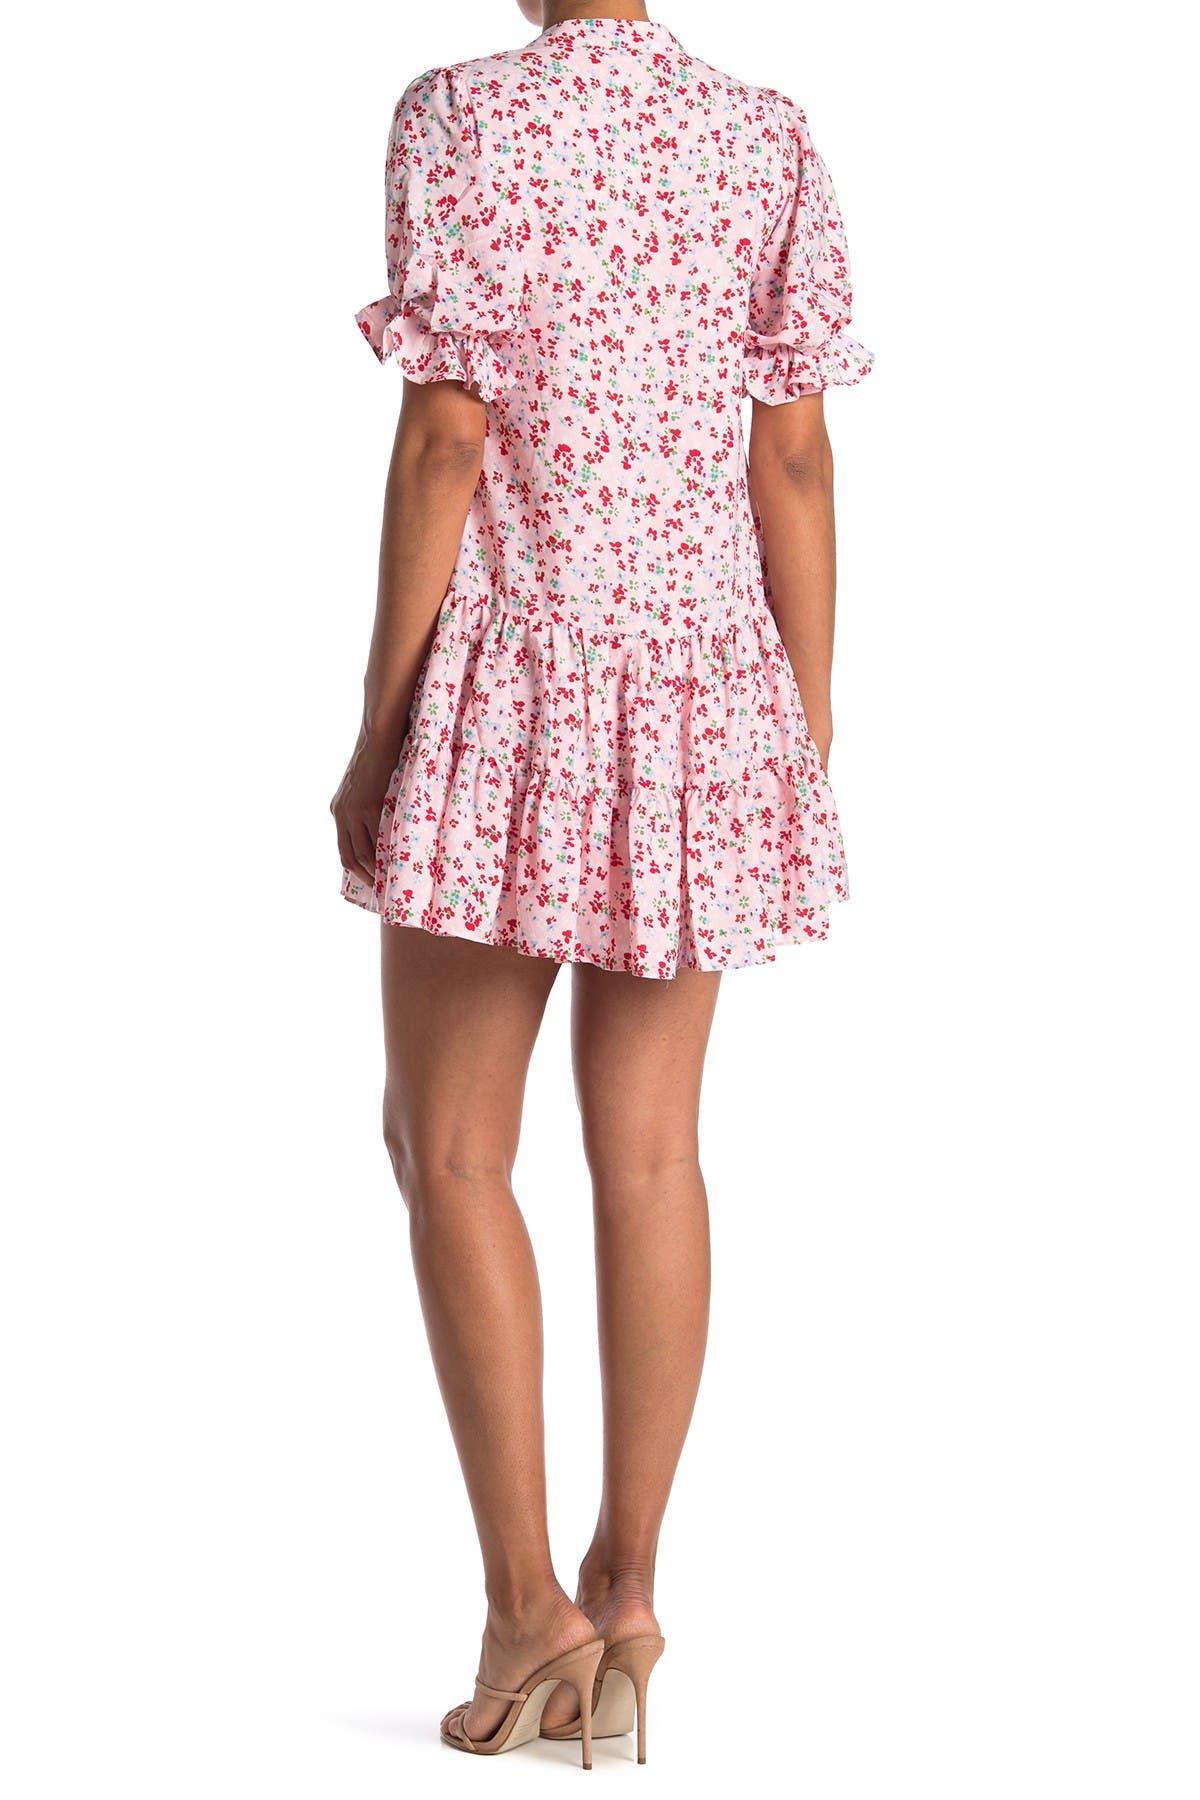 Image of MELLODAY Floral Print Tiered Babydoll Dress